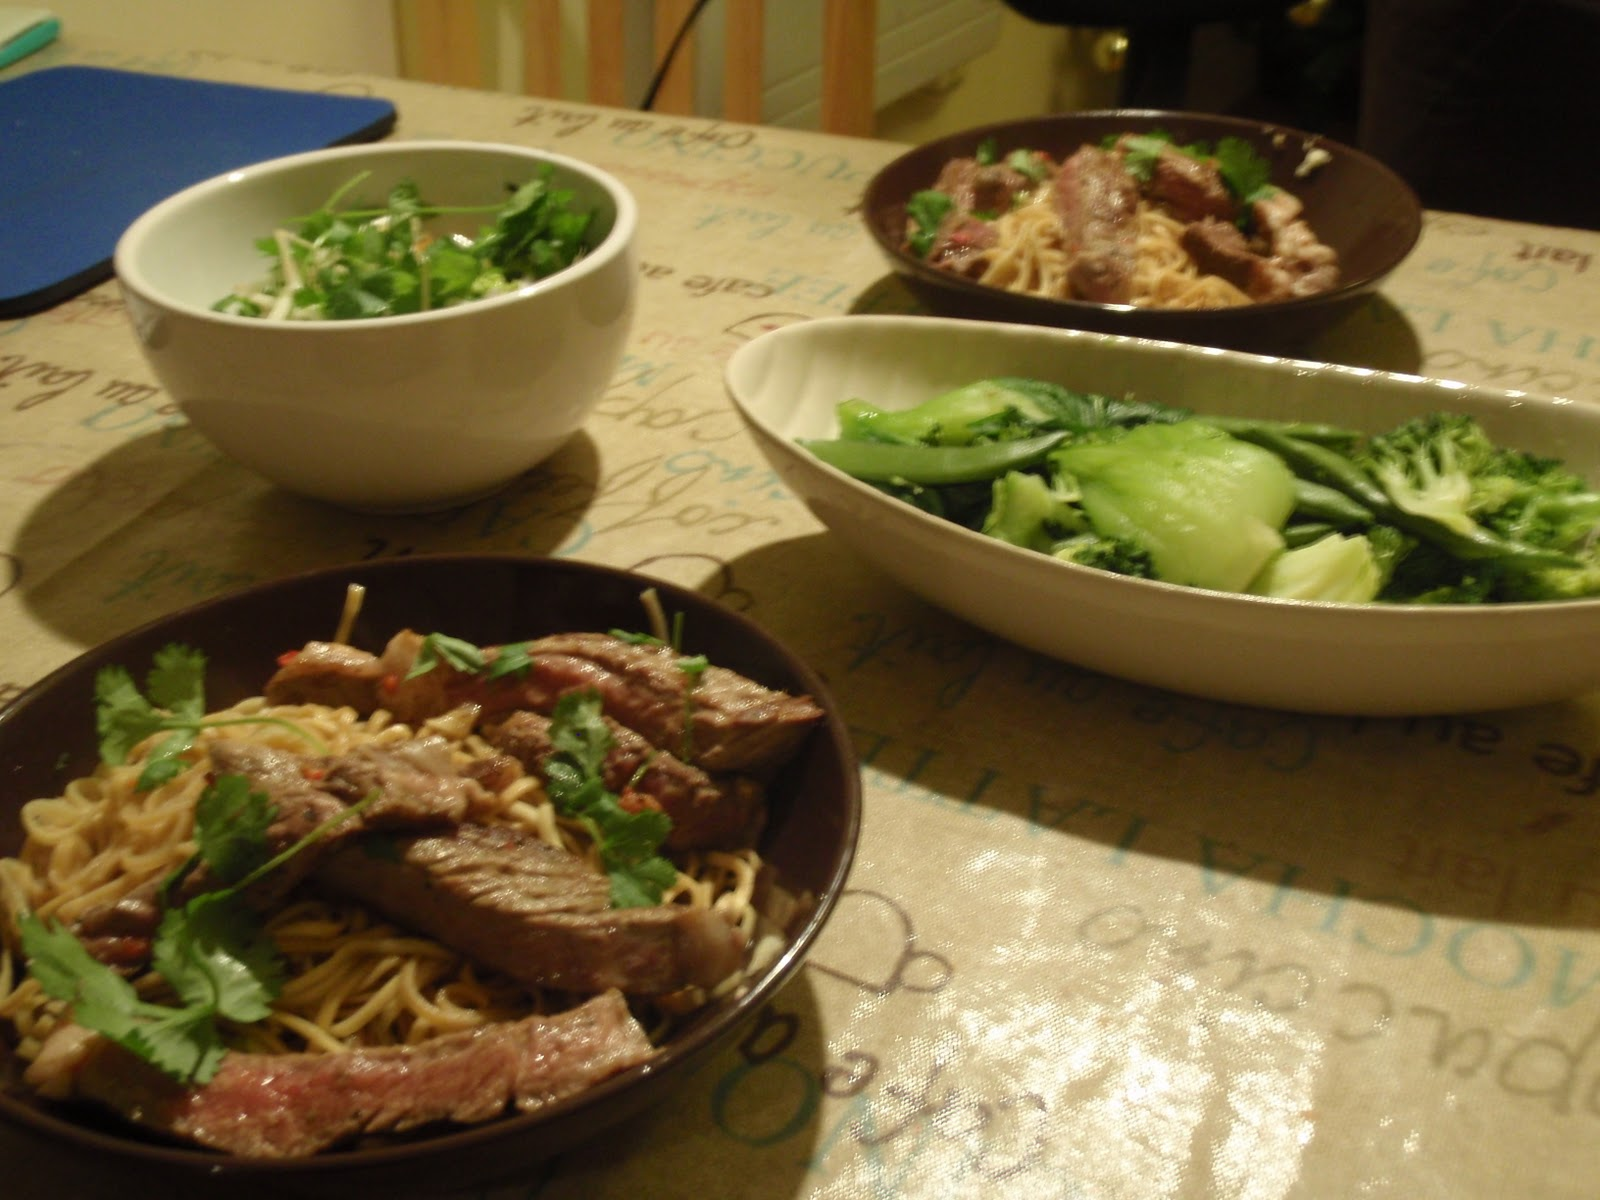 New Food Mondays: Jamie's Rib-Eye Stir-Fry and Dan Dan Noodles